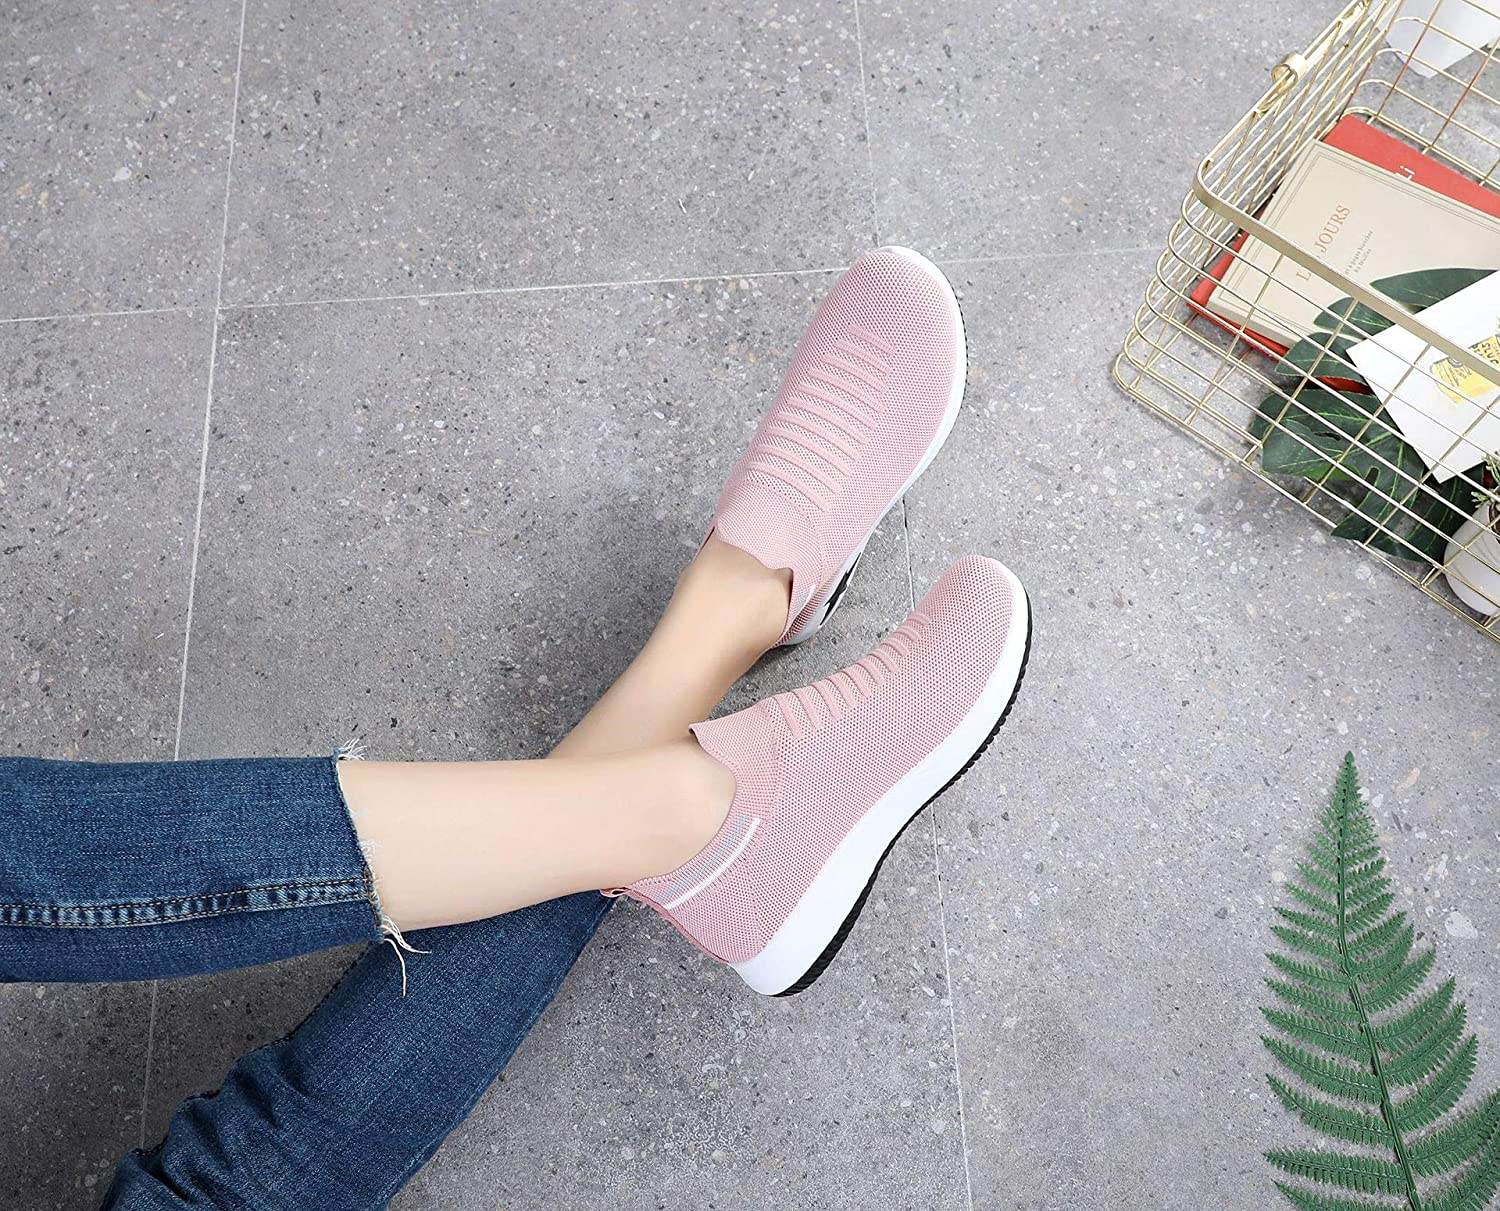 lizunlizun Spring and Summer New Womens Shoes Breathable Stretch Socks Shoes Womens Wild Lightweight Flying Woven Womens Shoes Casual Sports Shoes Womens Multicolor